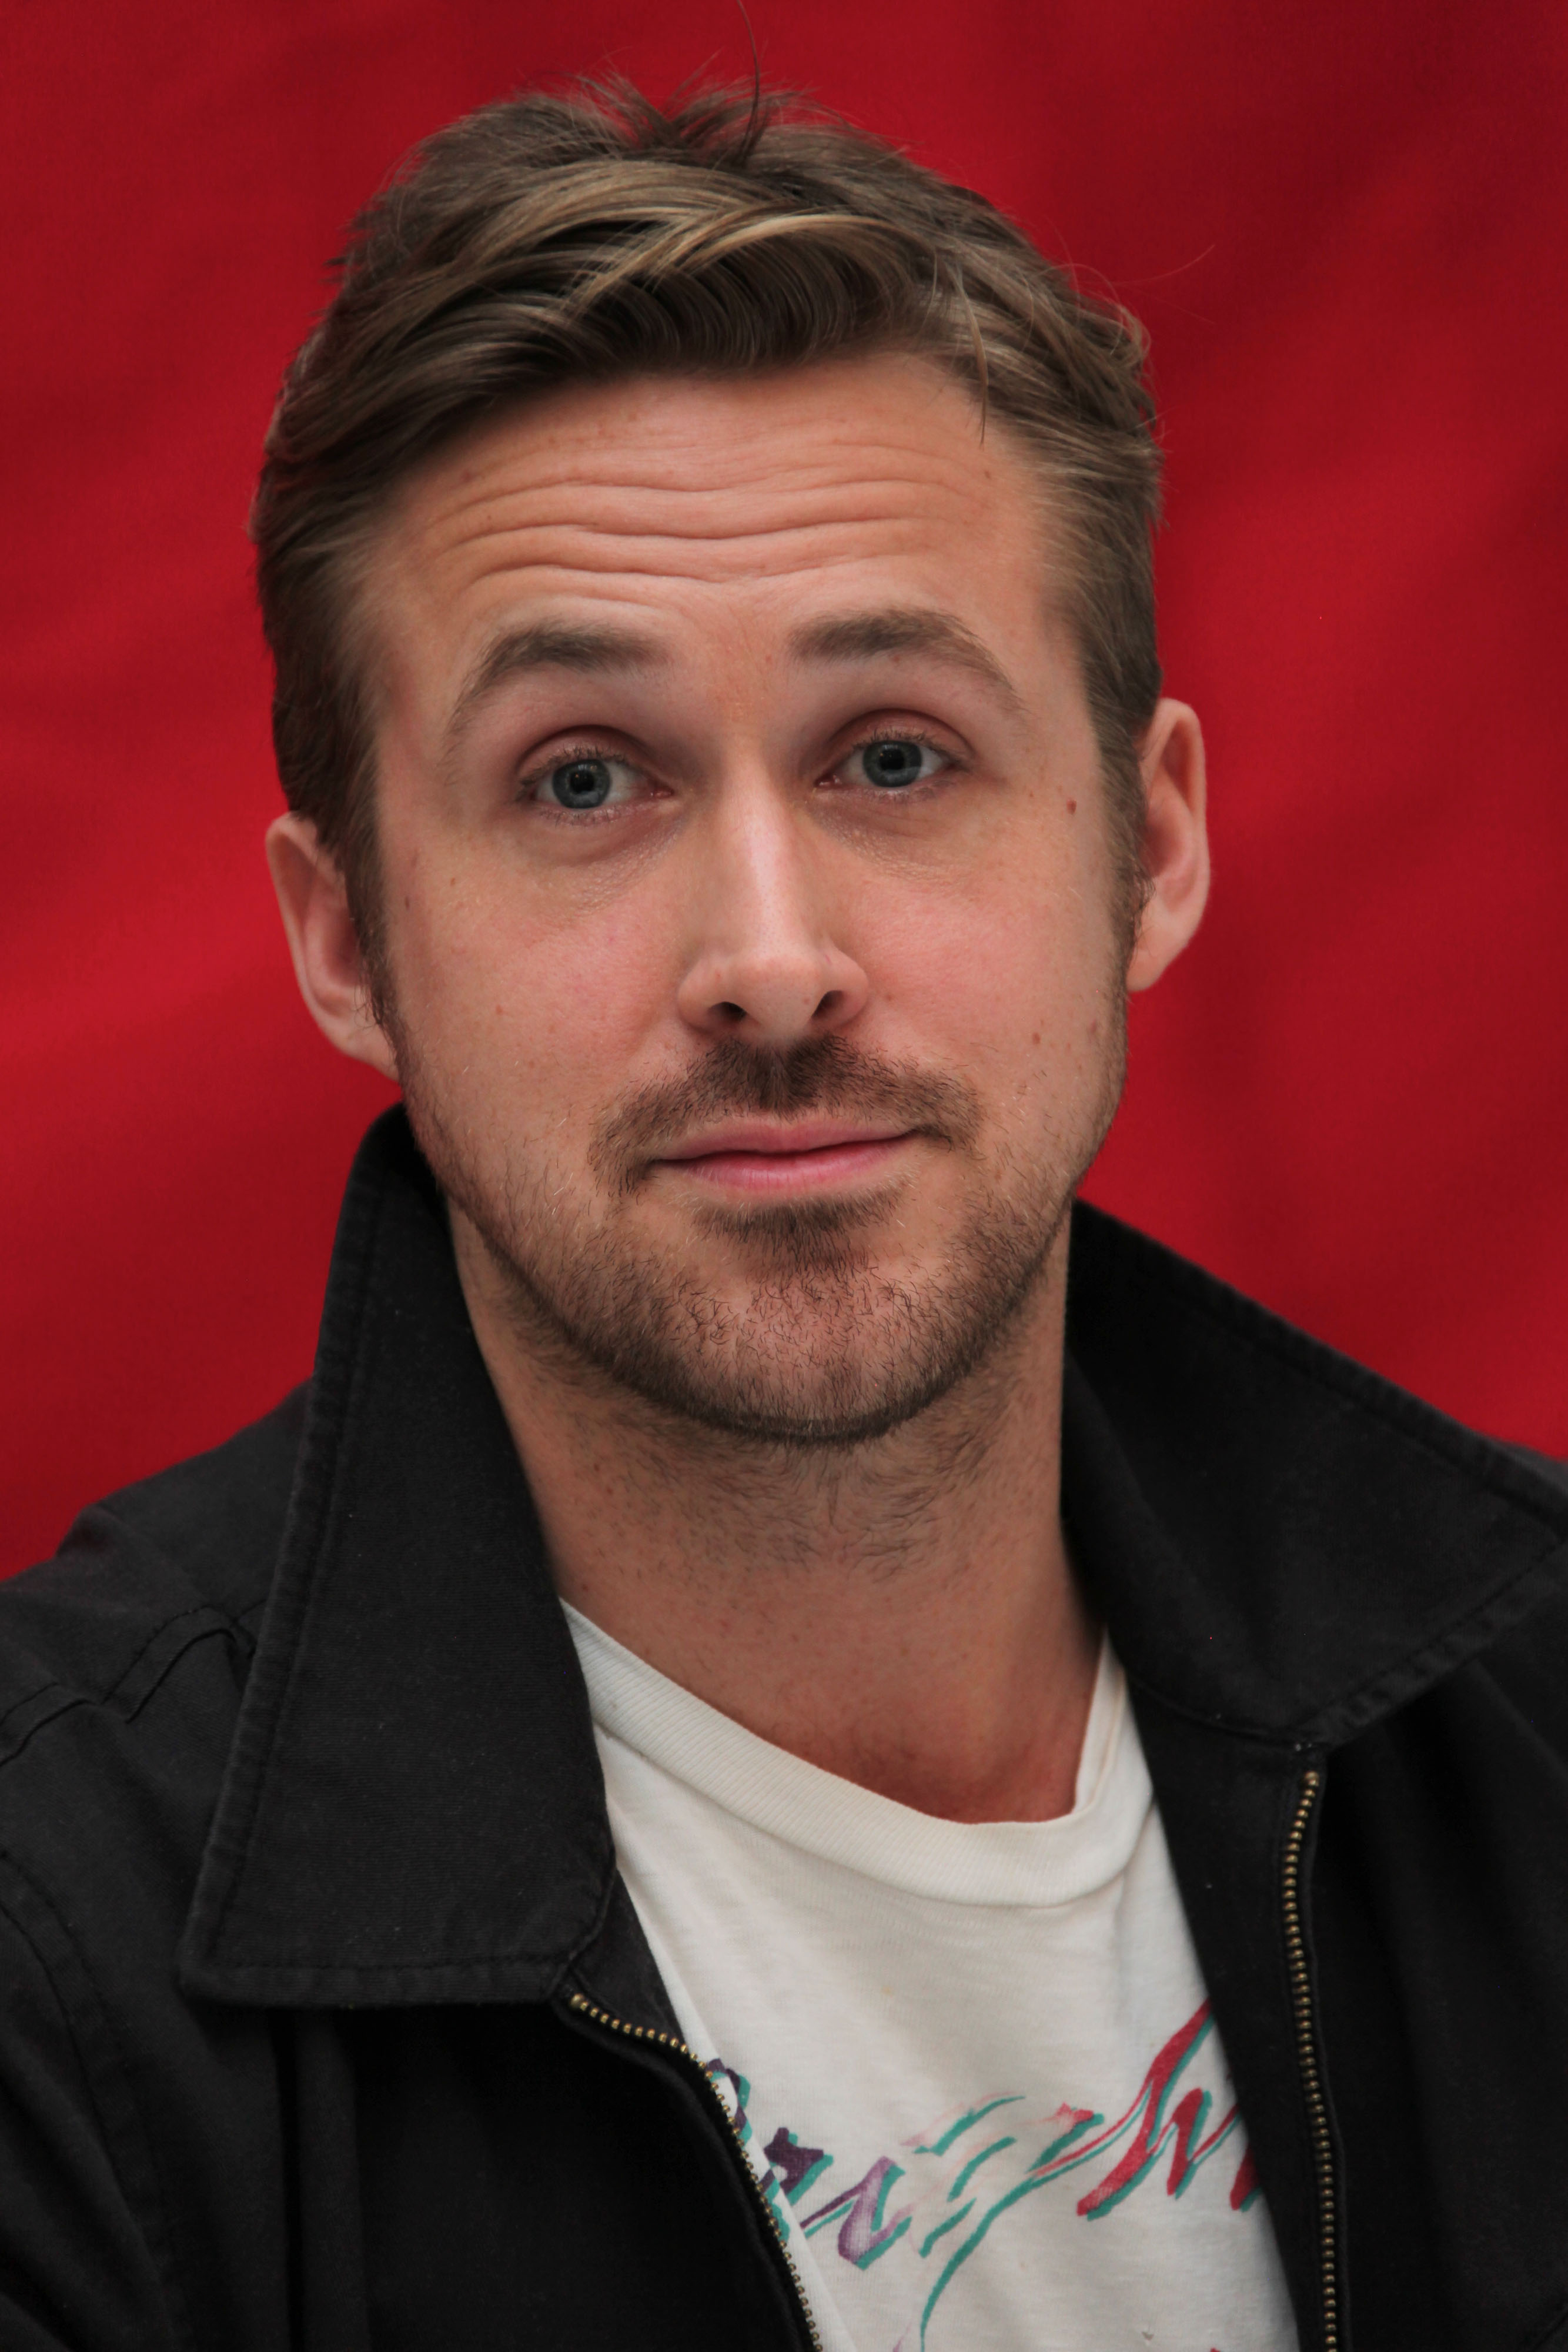 Ryan Gosling Wallpapers High Quality | Download Free